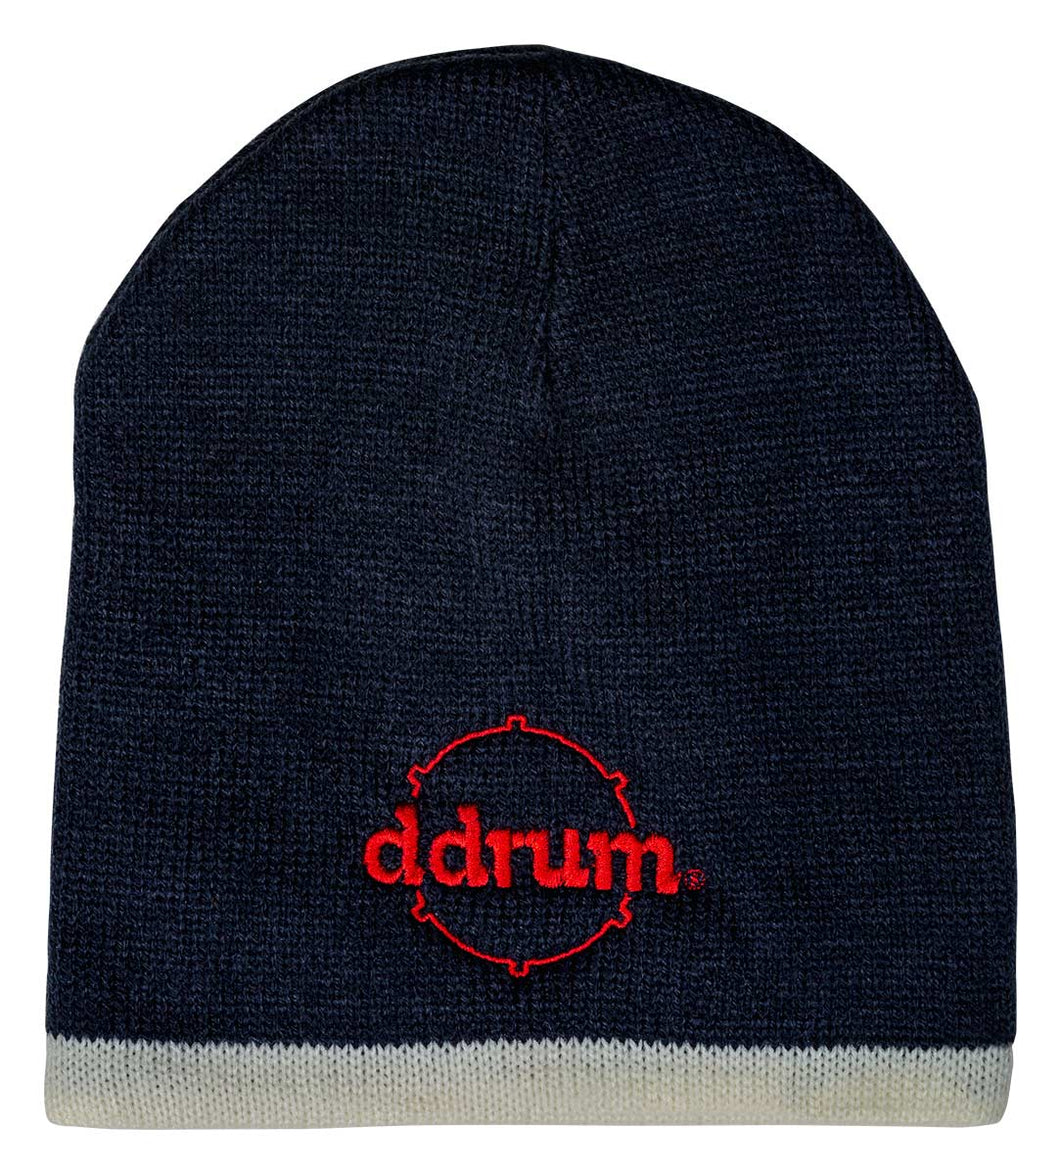 ddrum Beanie Navy Blue